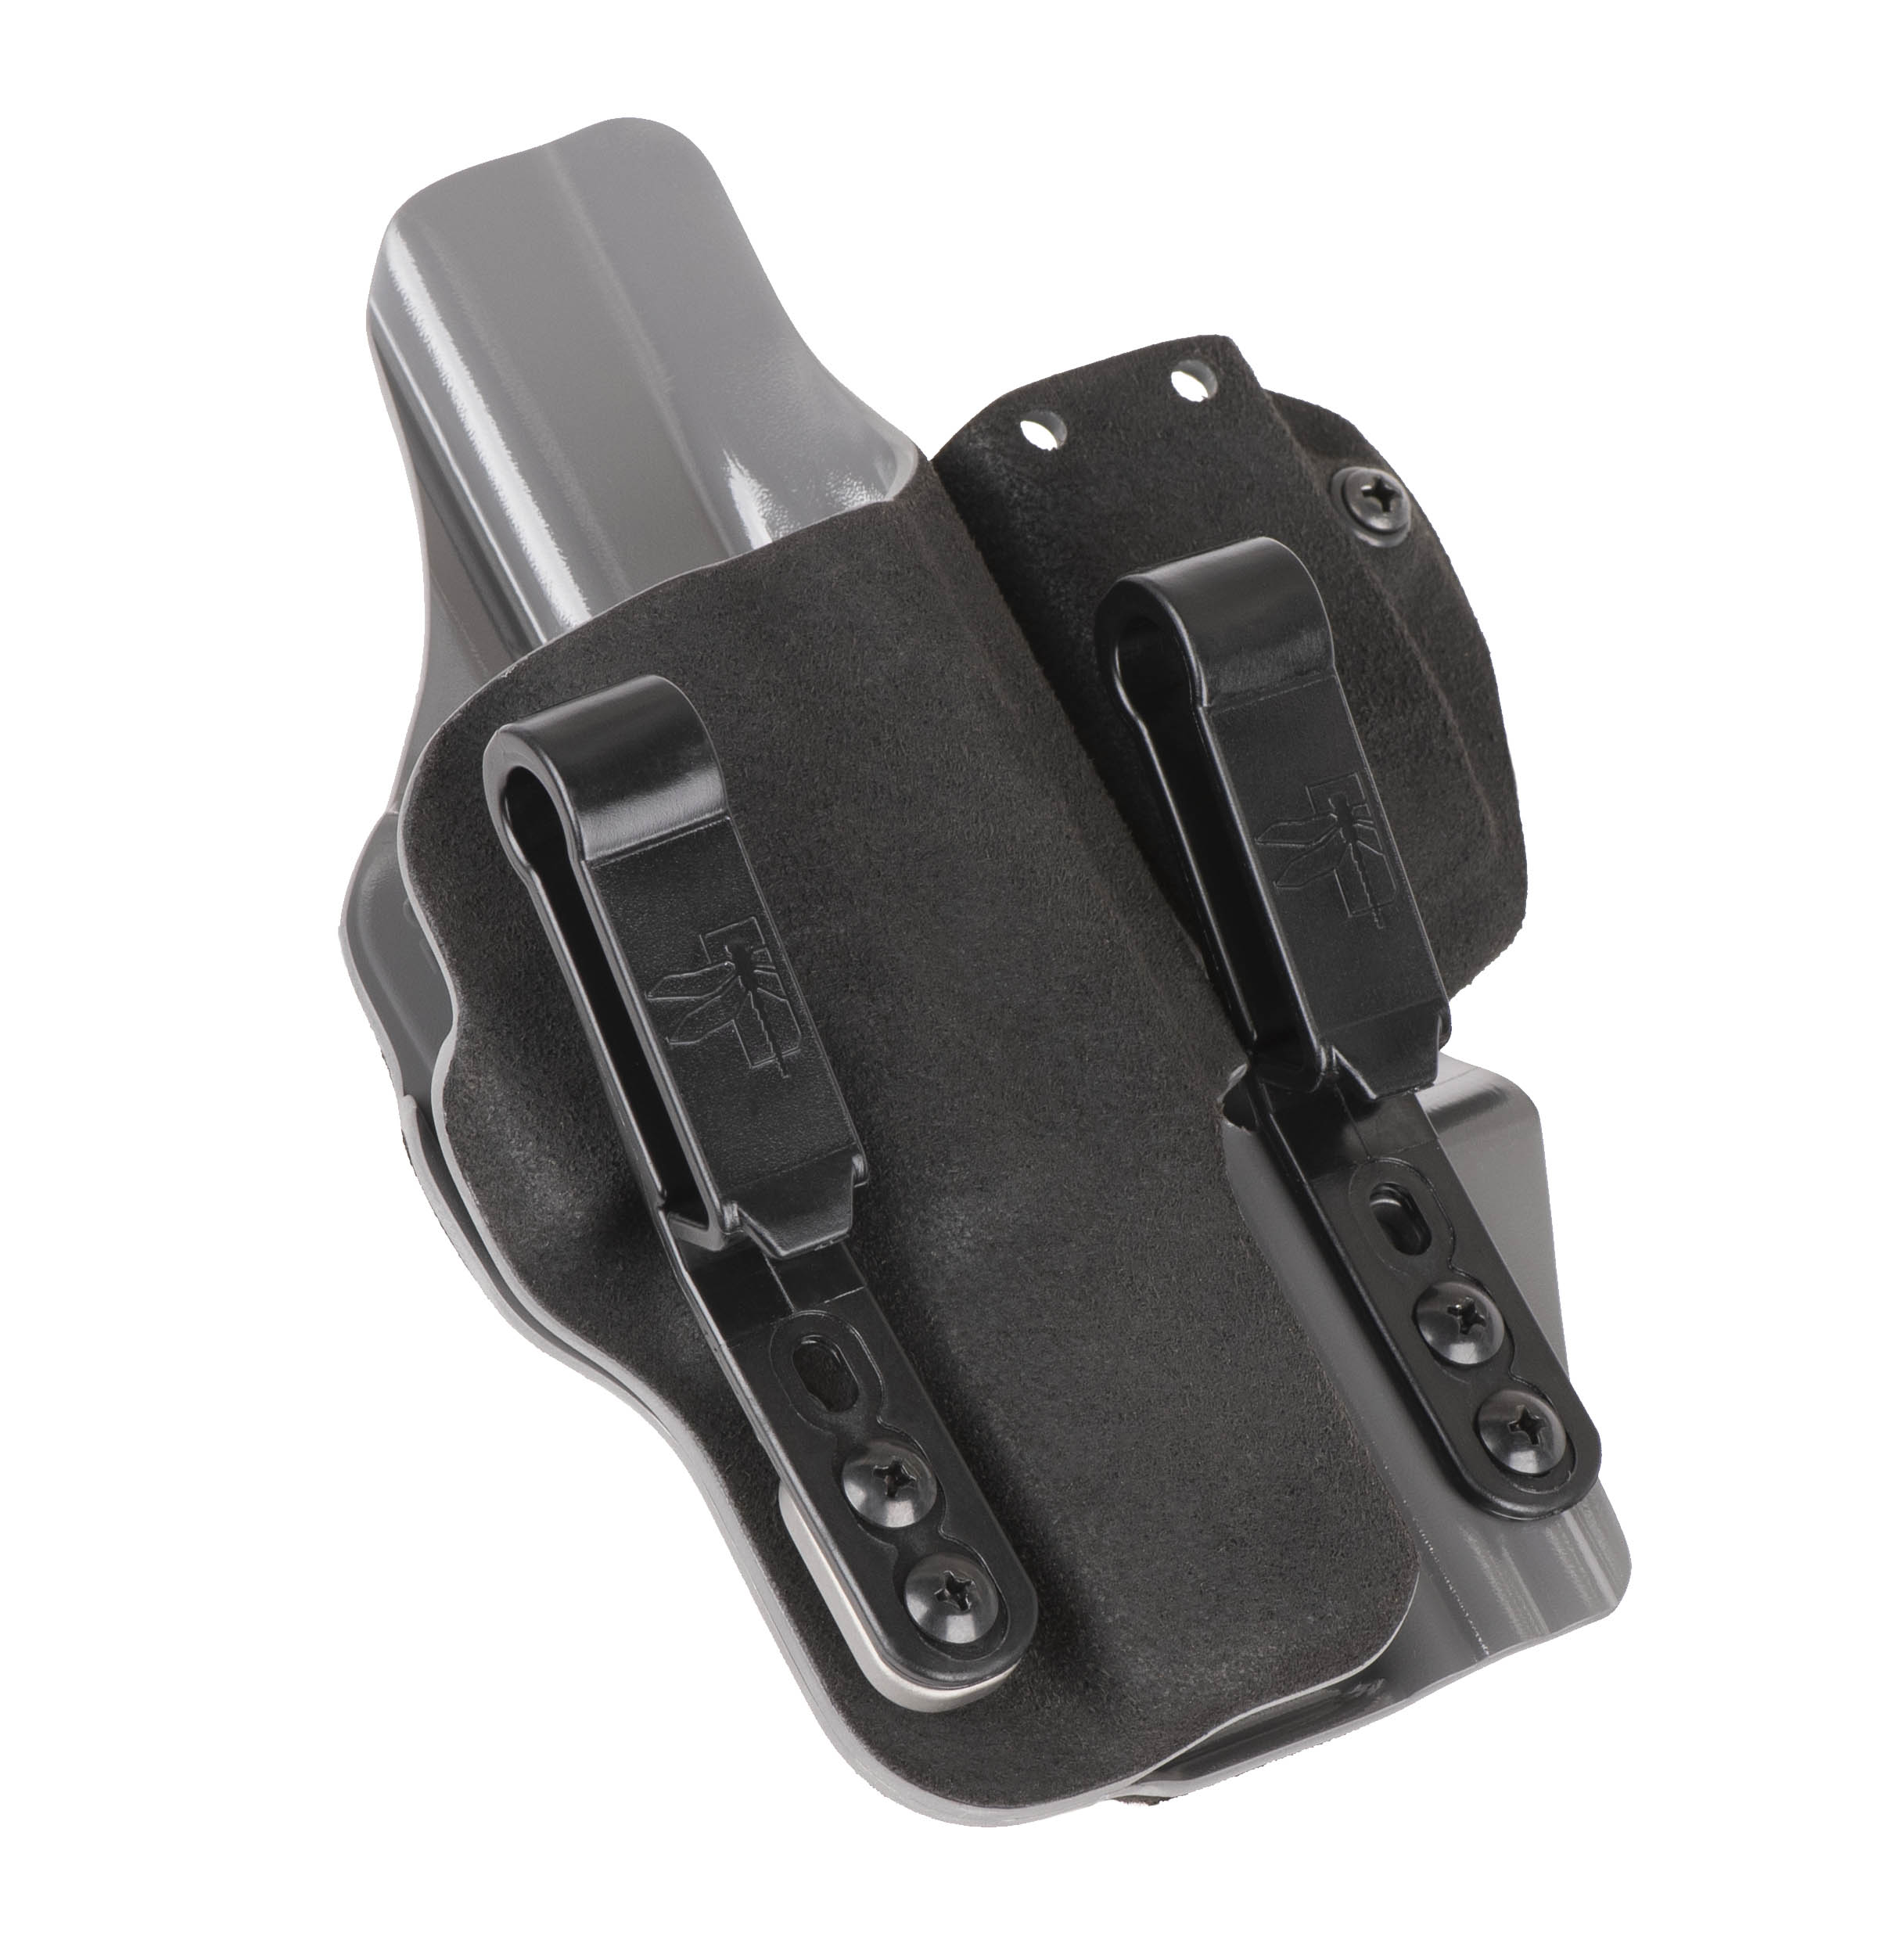 www.tacticalholsters.com